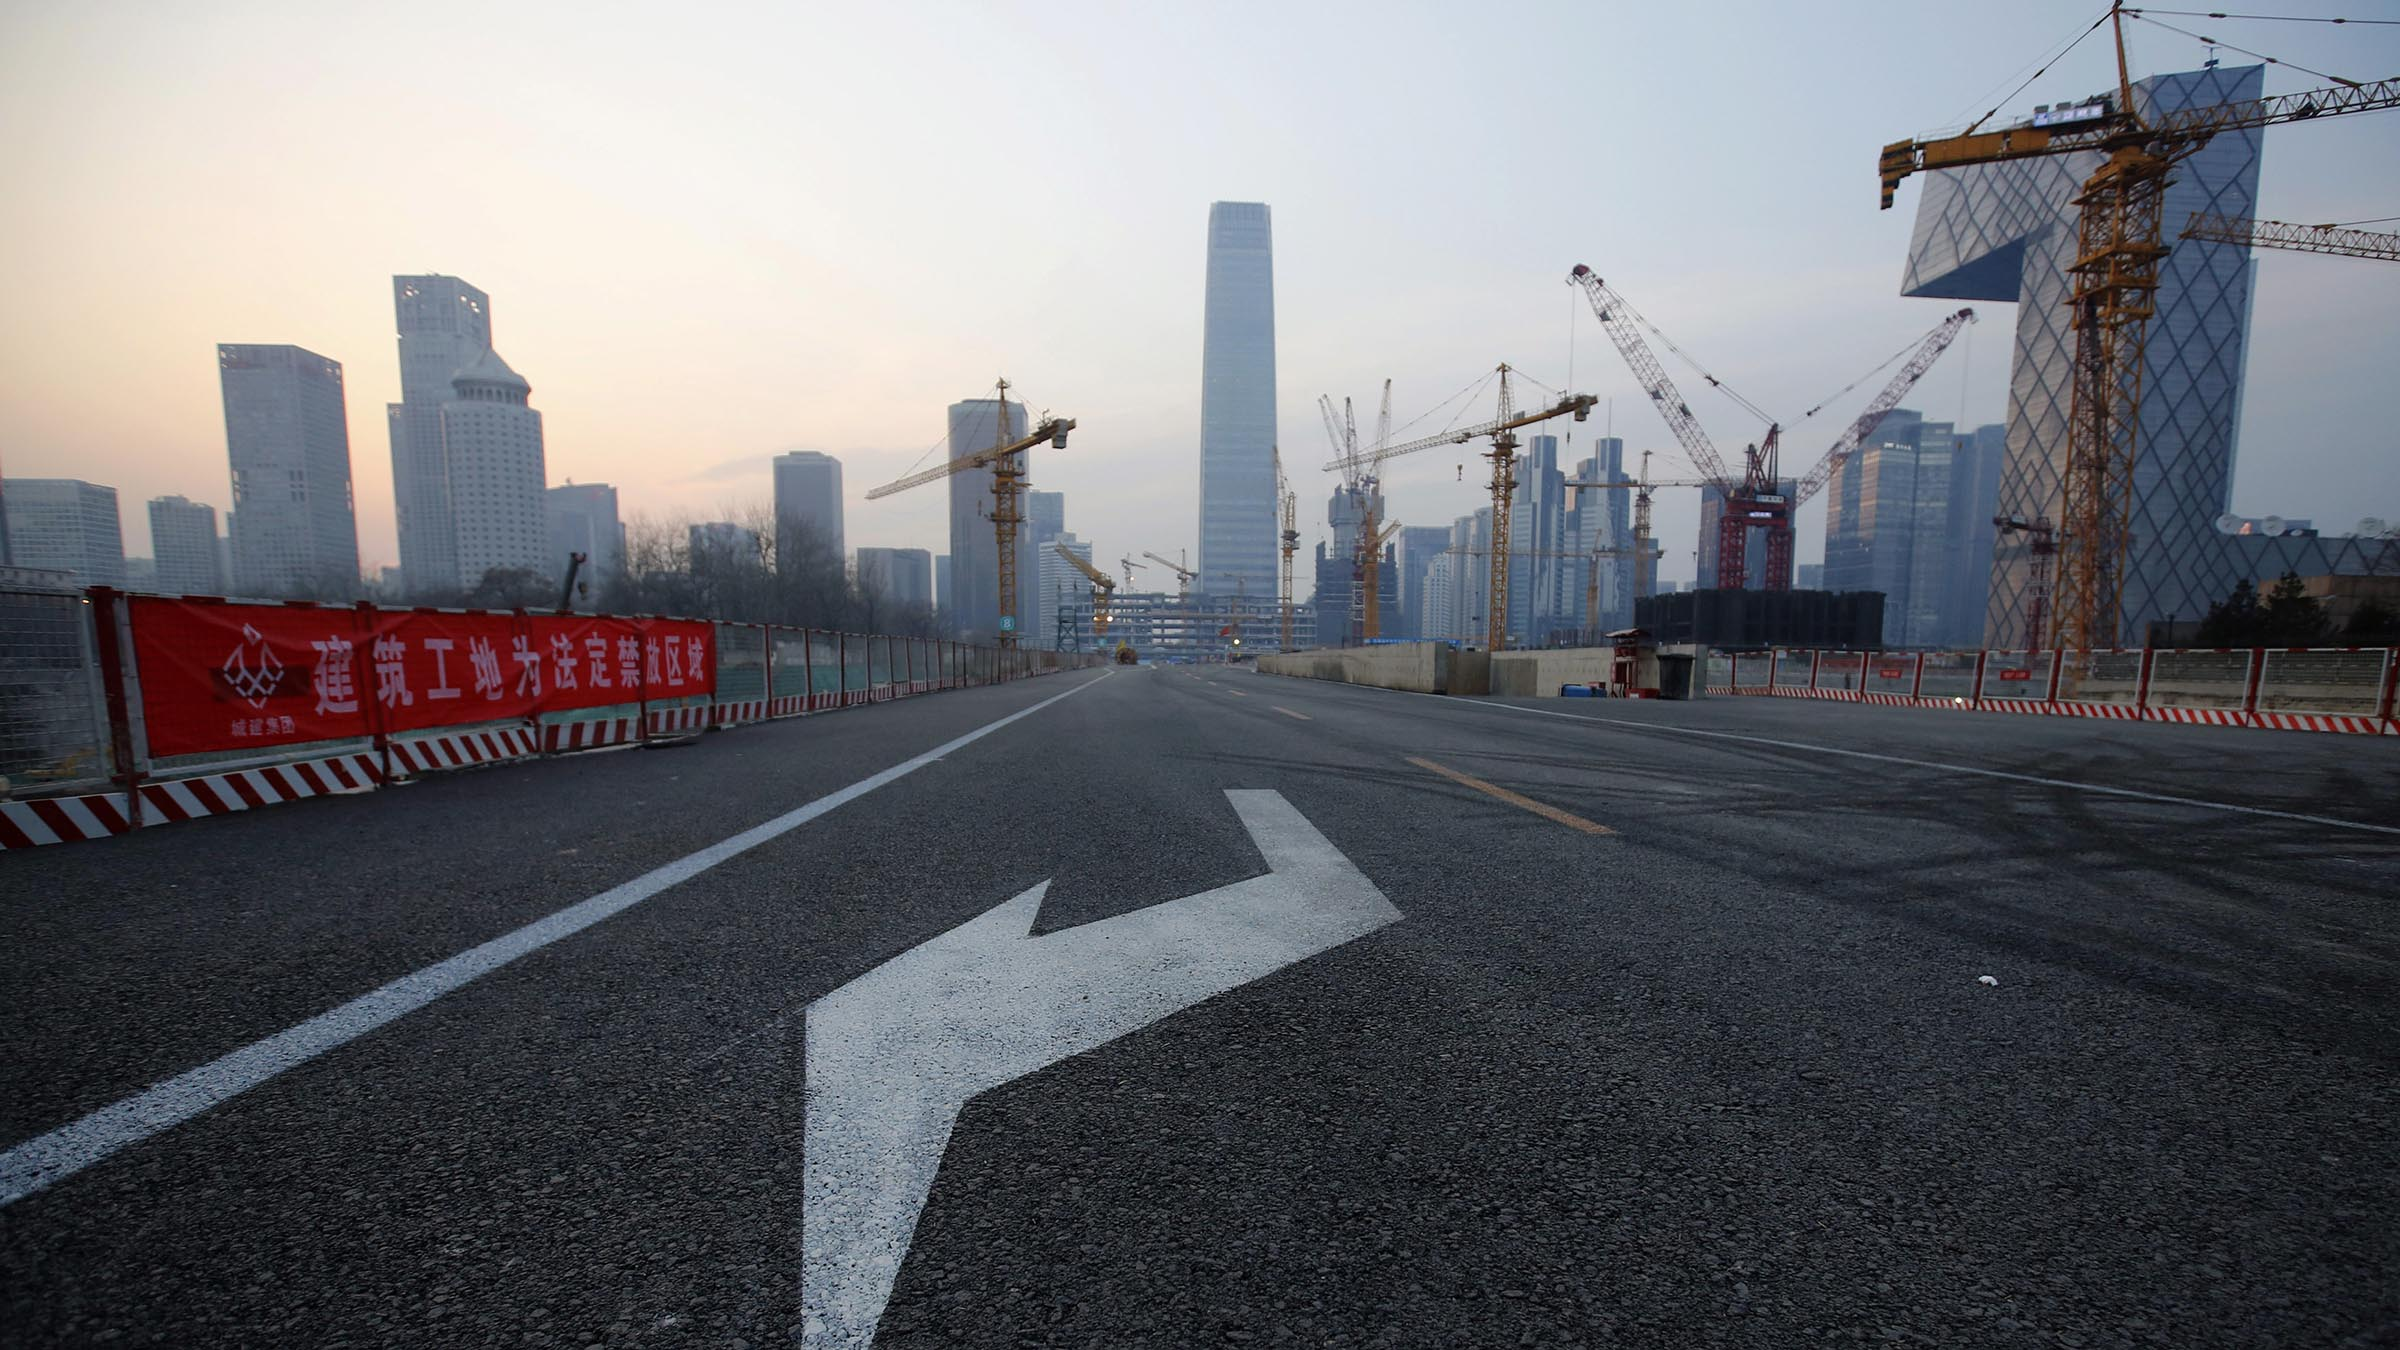 An arrow marking is seen on a road inside a large construction site in Beijing January 20, 2015. China's economy grew at its slowest pace in 24 years in 2014 as property prices cooled and companies and local governments struggled under heavy debt burdens, keeping pressure on Beijing to take aggressive steps to avoid a sharper downturn. REUTERS/Kim Kyung-Hoon (CHINA - Tags: BUSINESS CONSTRUCTION) - RTR4M44V